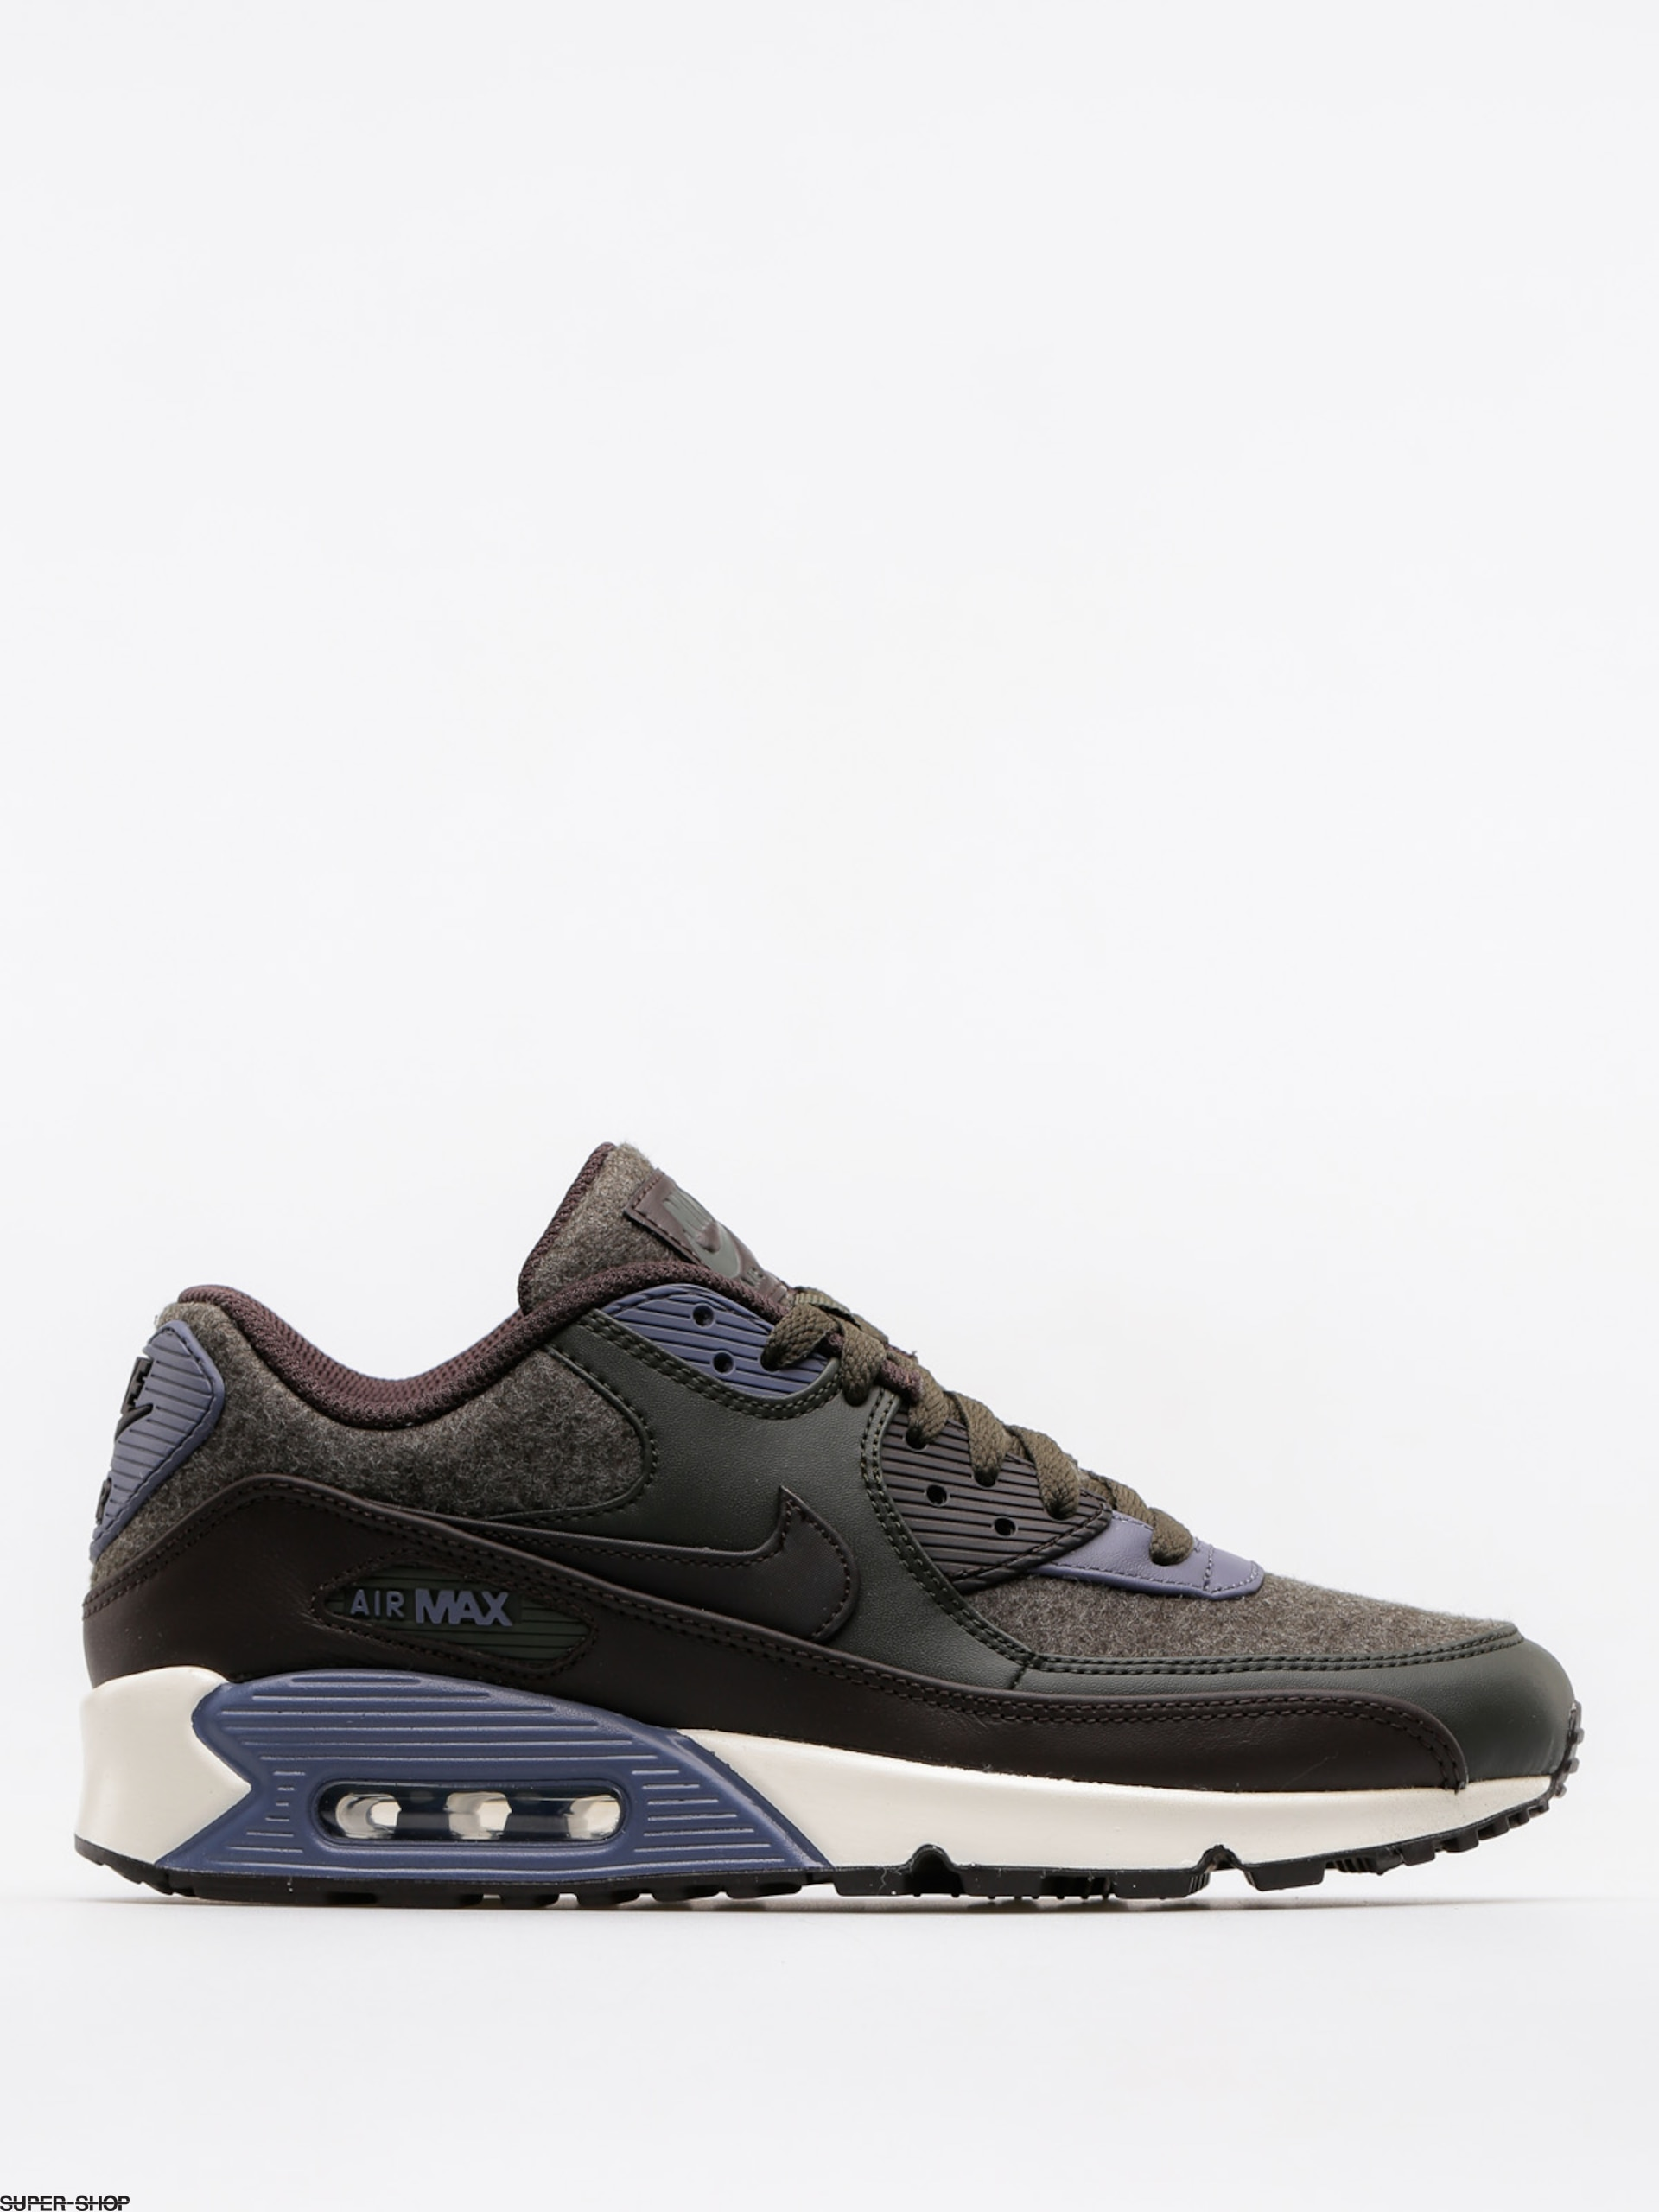 Nike Shoes Air Max 90 Premium (sequoia/velvet brown light carbon)